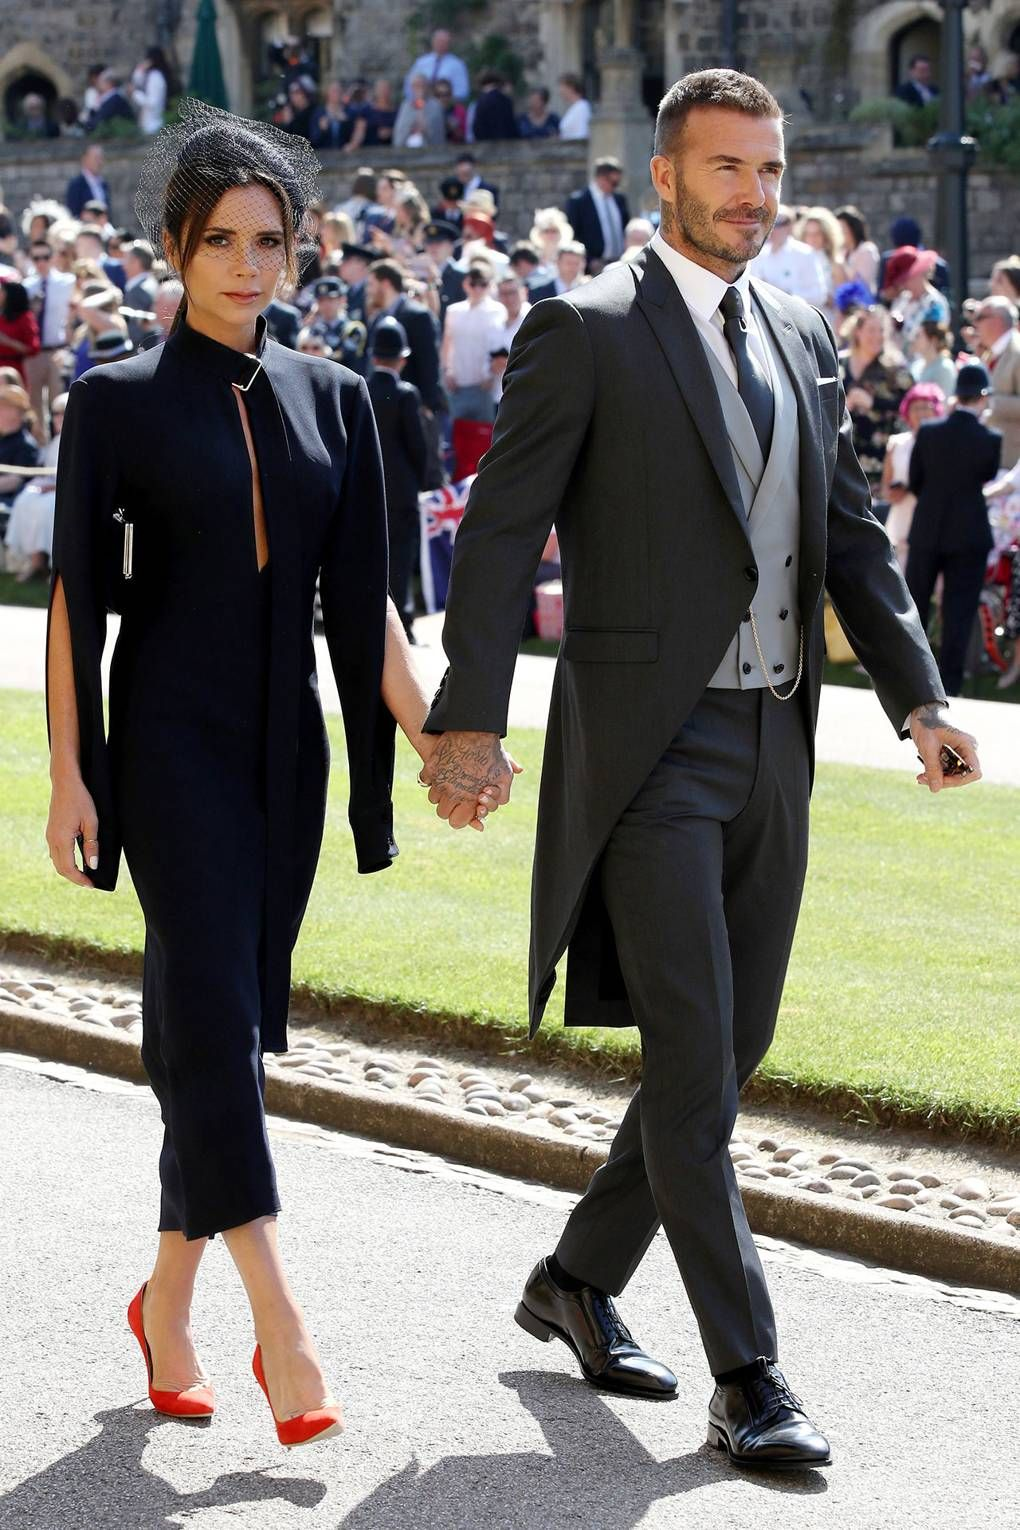 Royal Wedding Guest Photos Victoria Beckham Outfit Ideas David